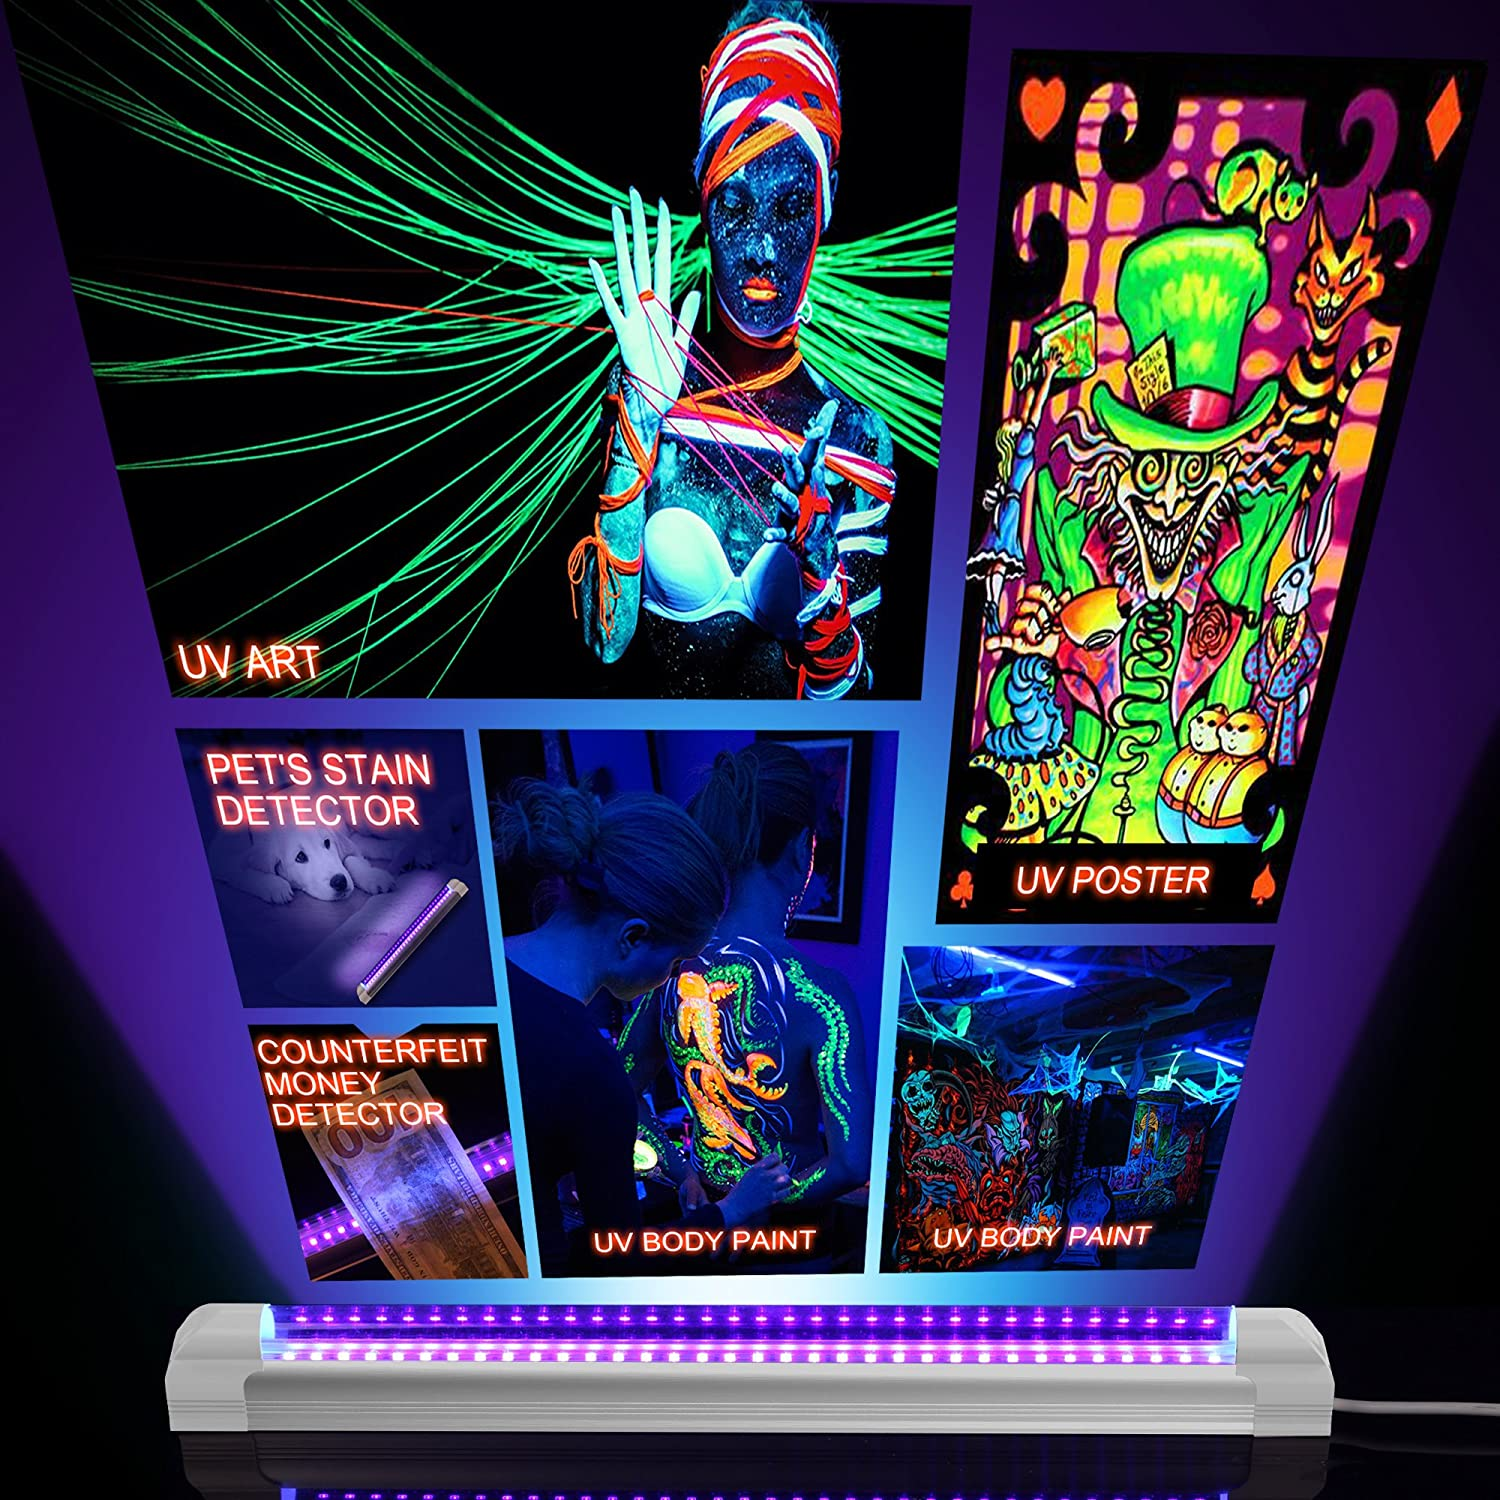 UV Art Ultraviolet Curing KAIKING Heavy Duty 6W Portable USB Blacklight for UV Poster Upgrade Authentication Currency Stain Detector Or Home Party UV LED Black Light Fixture 4 Pack